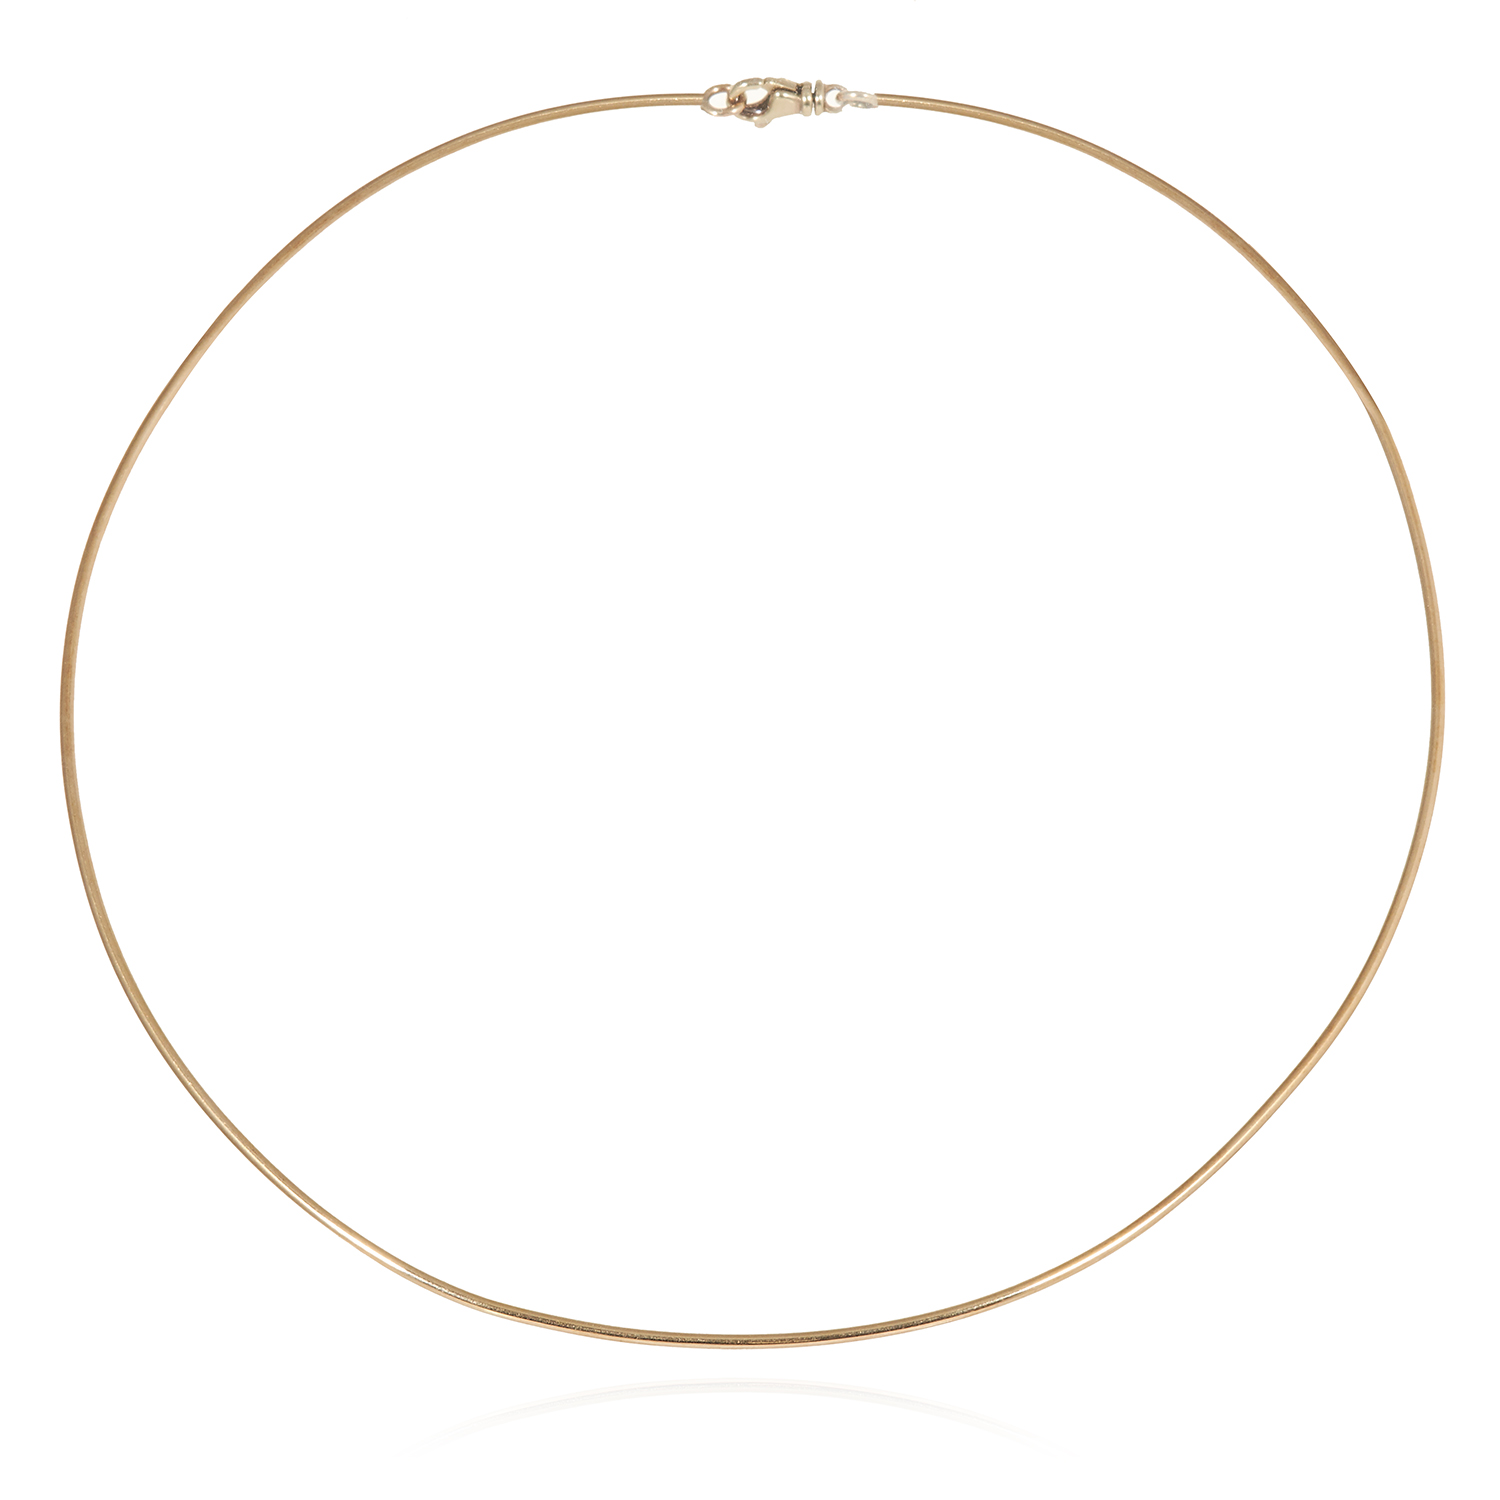 Los 21A - GOLD TORQUE NECKLACE in yellow gold, 12.5cm inner diameter, 9.4g.